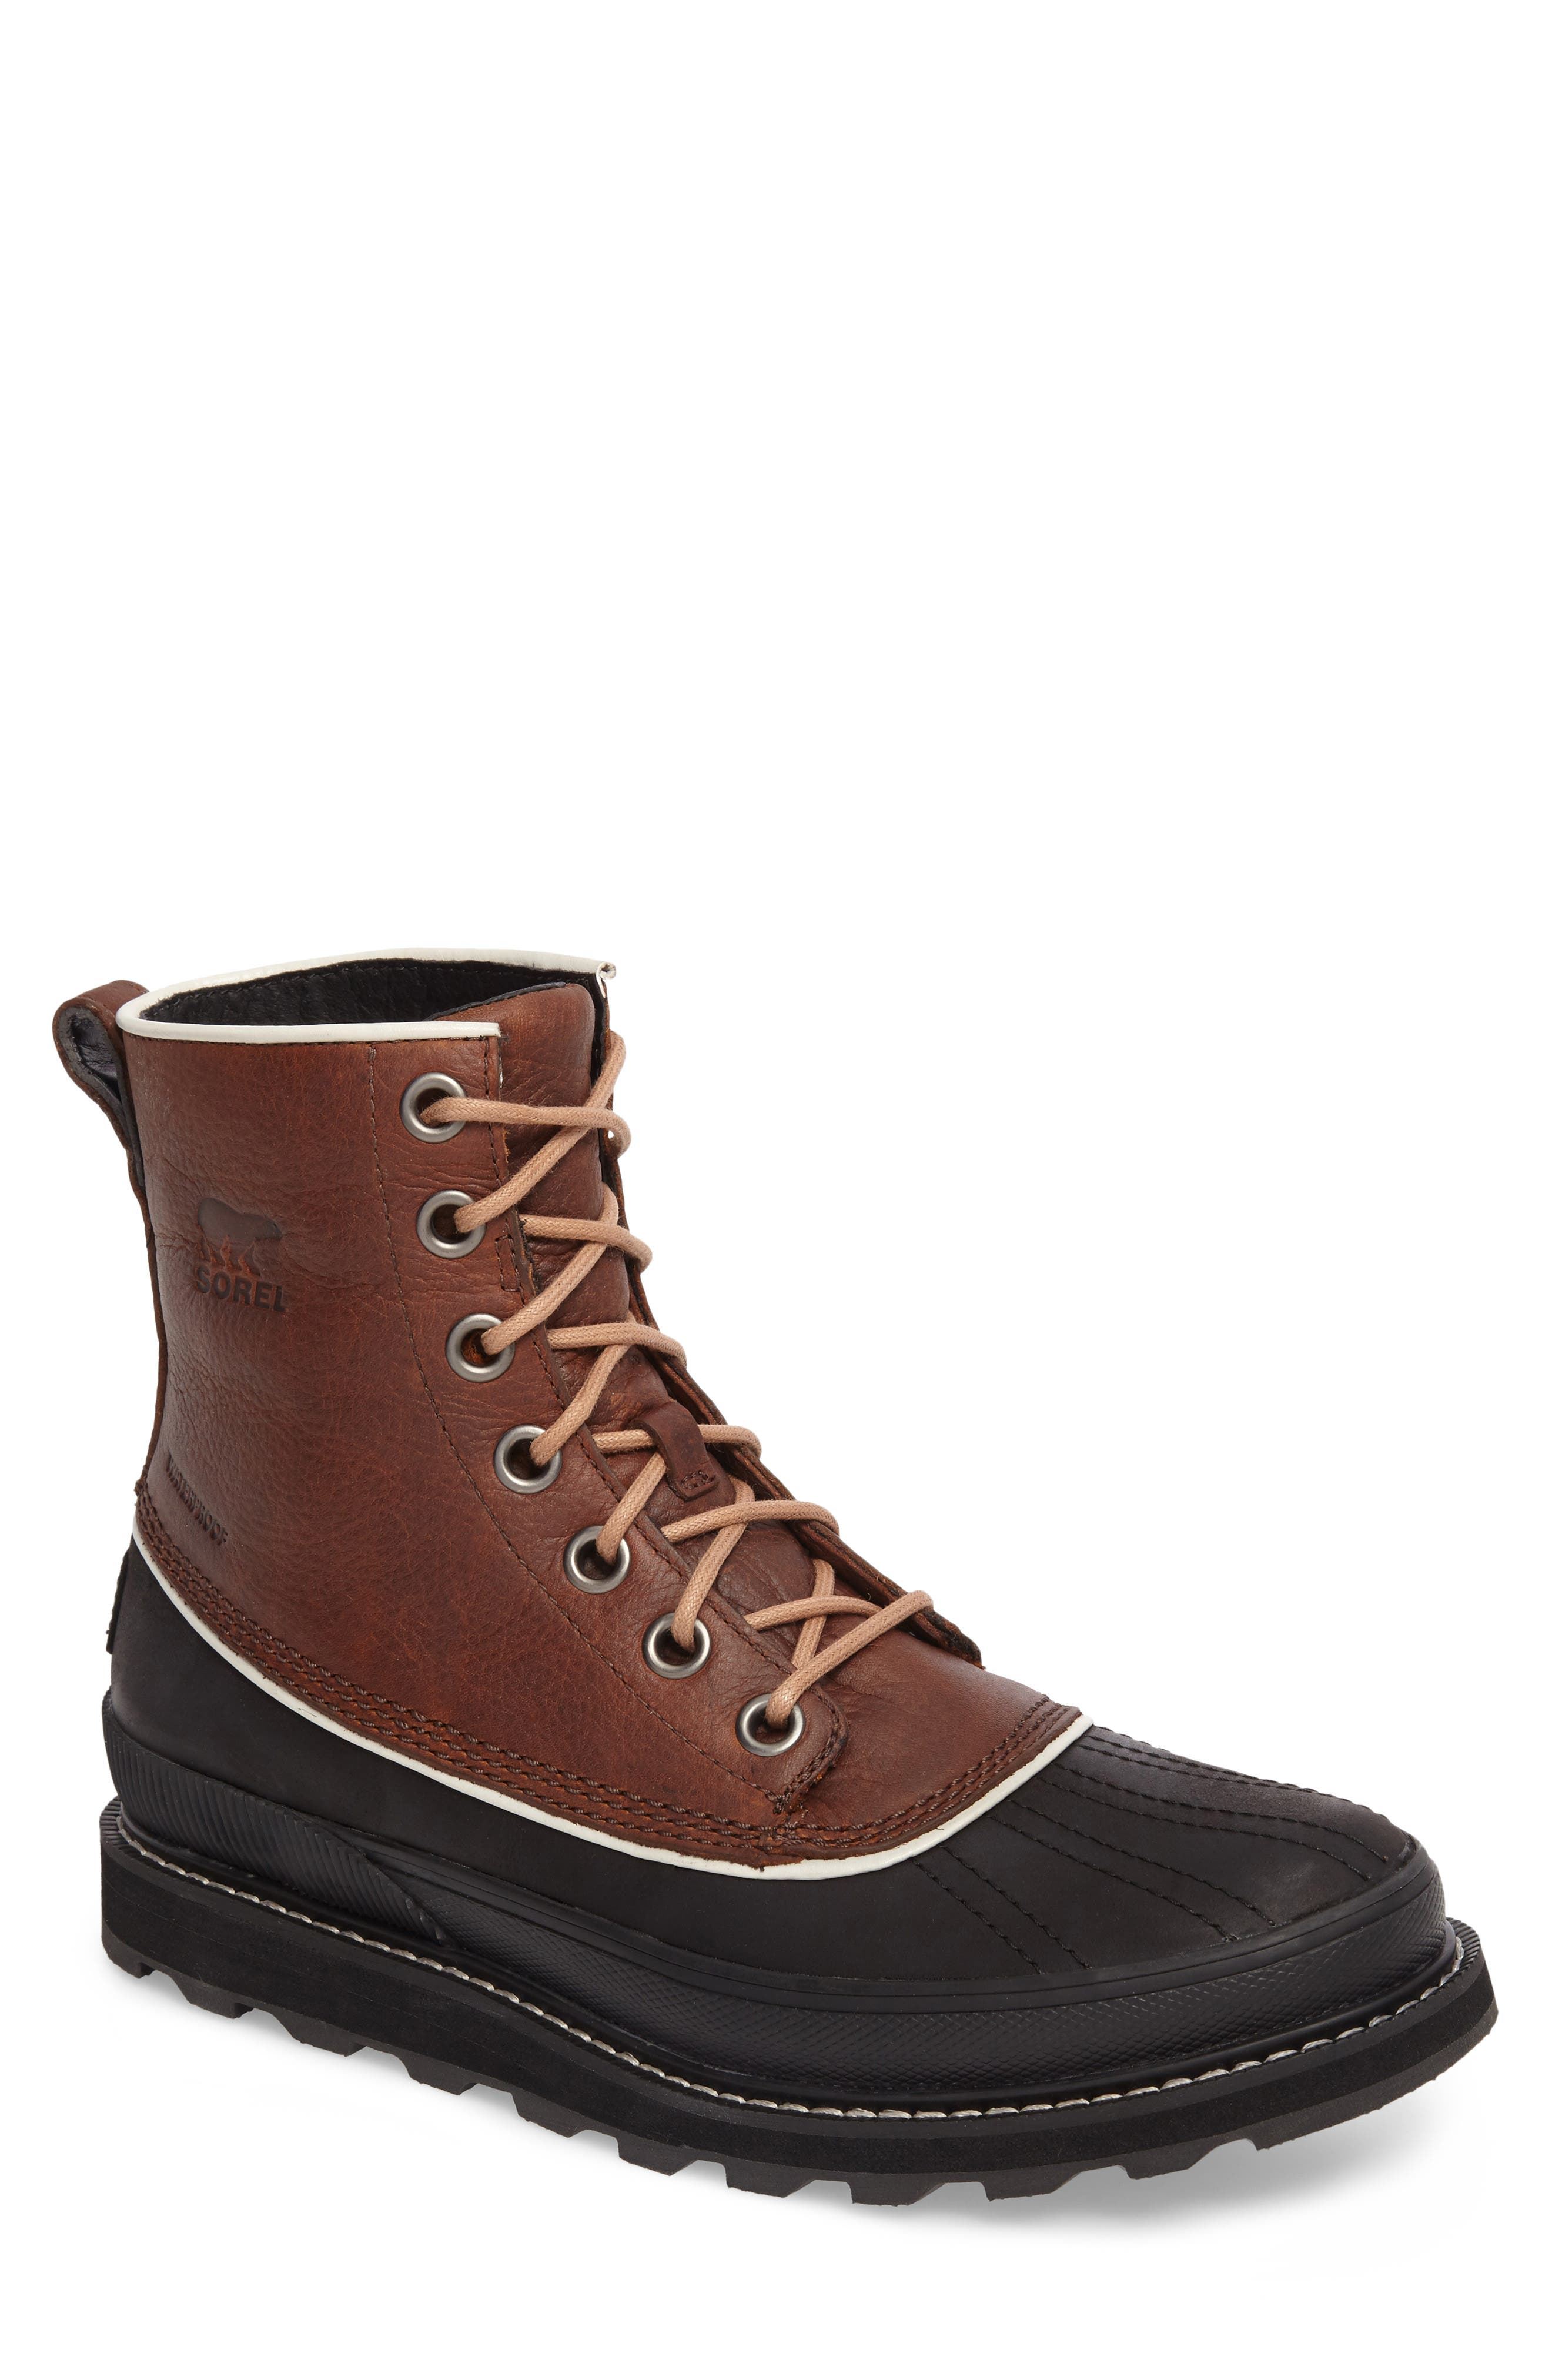 Madson 1964 Waterproof Boot,                             Main thumbnail 1, color,                             200